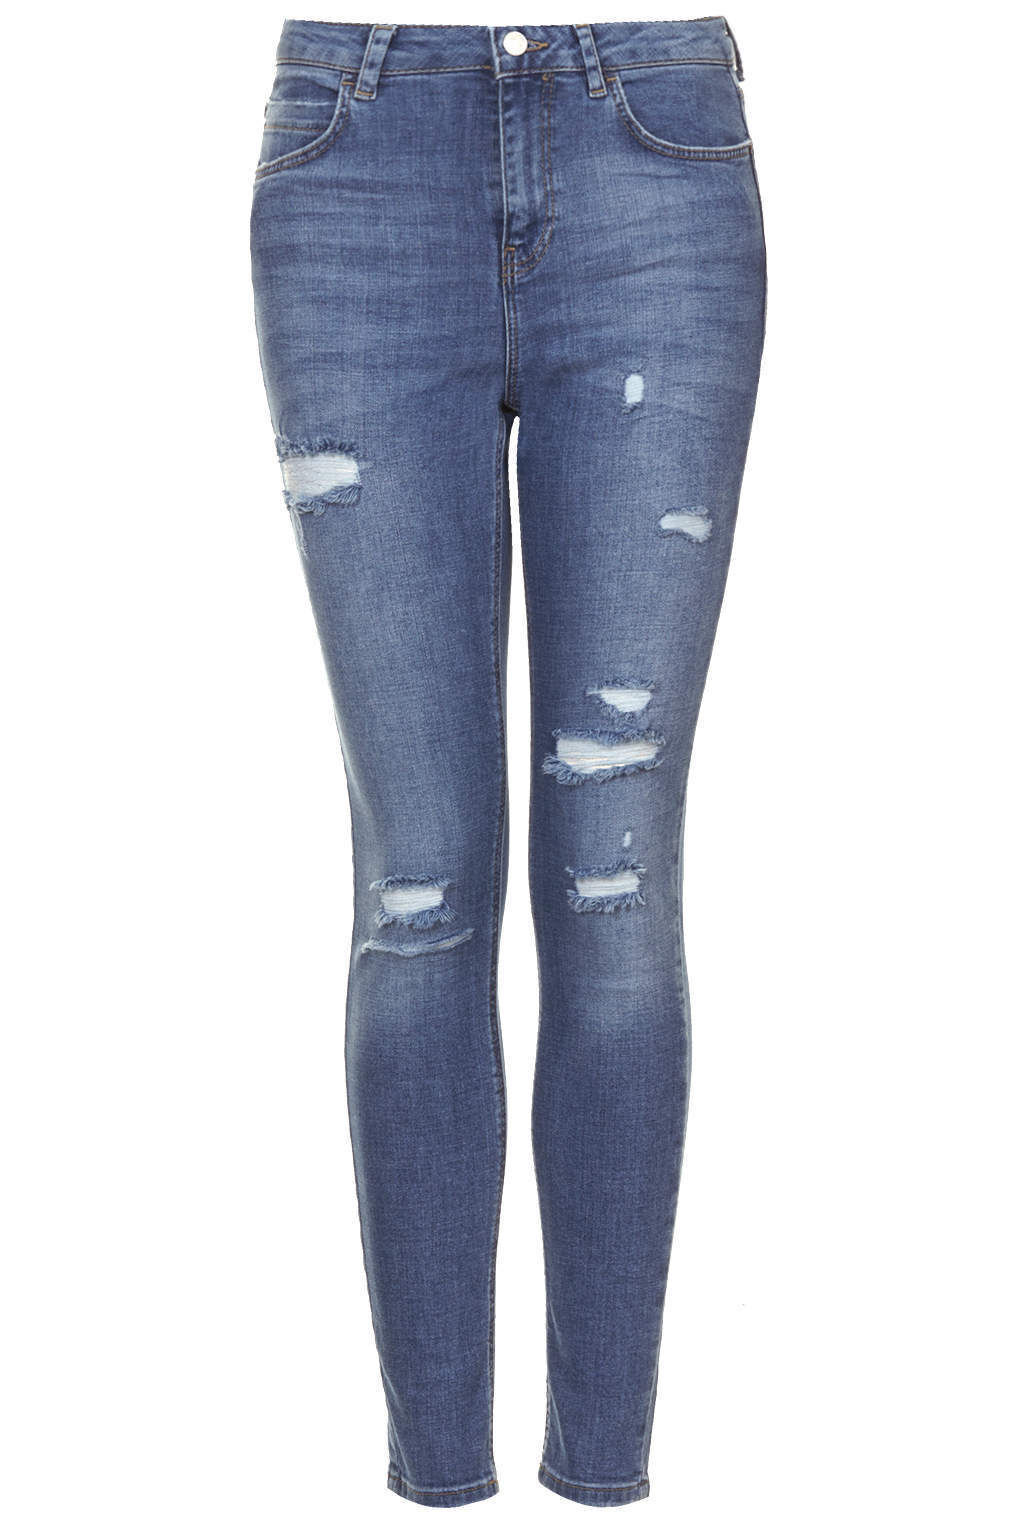 top 10 designer jeans for women ebay